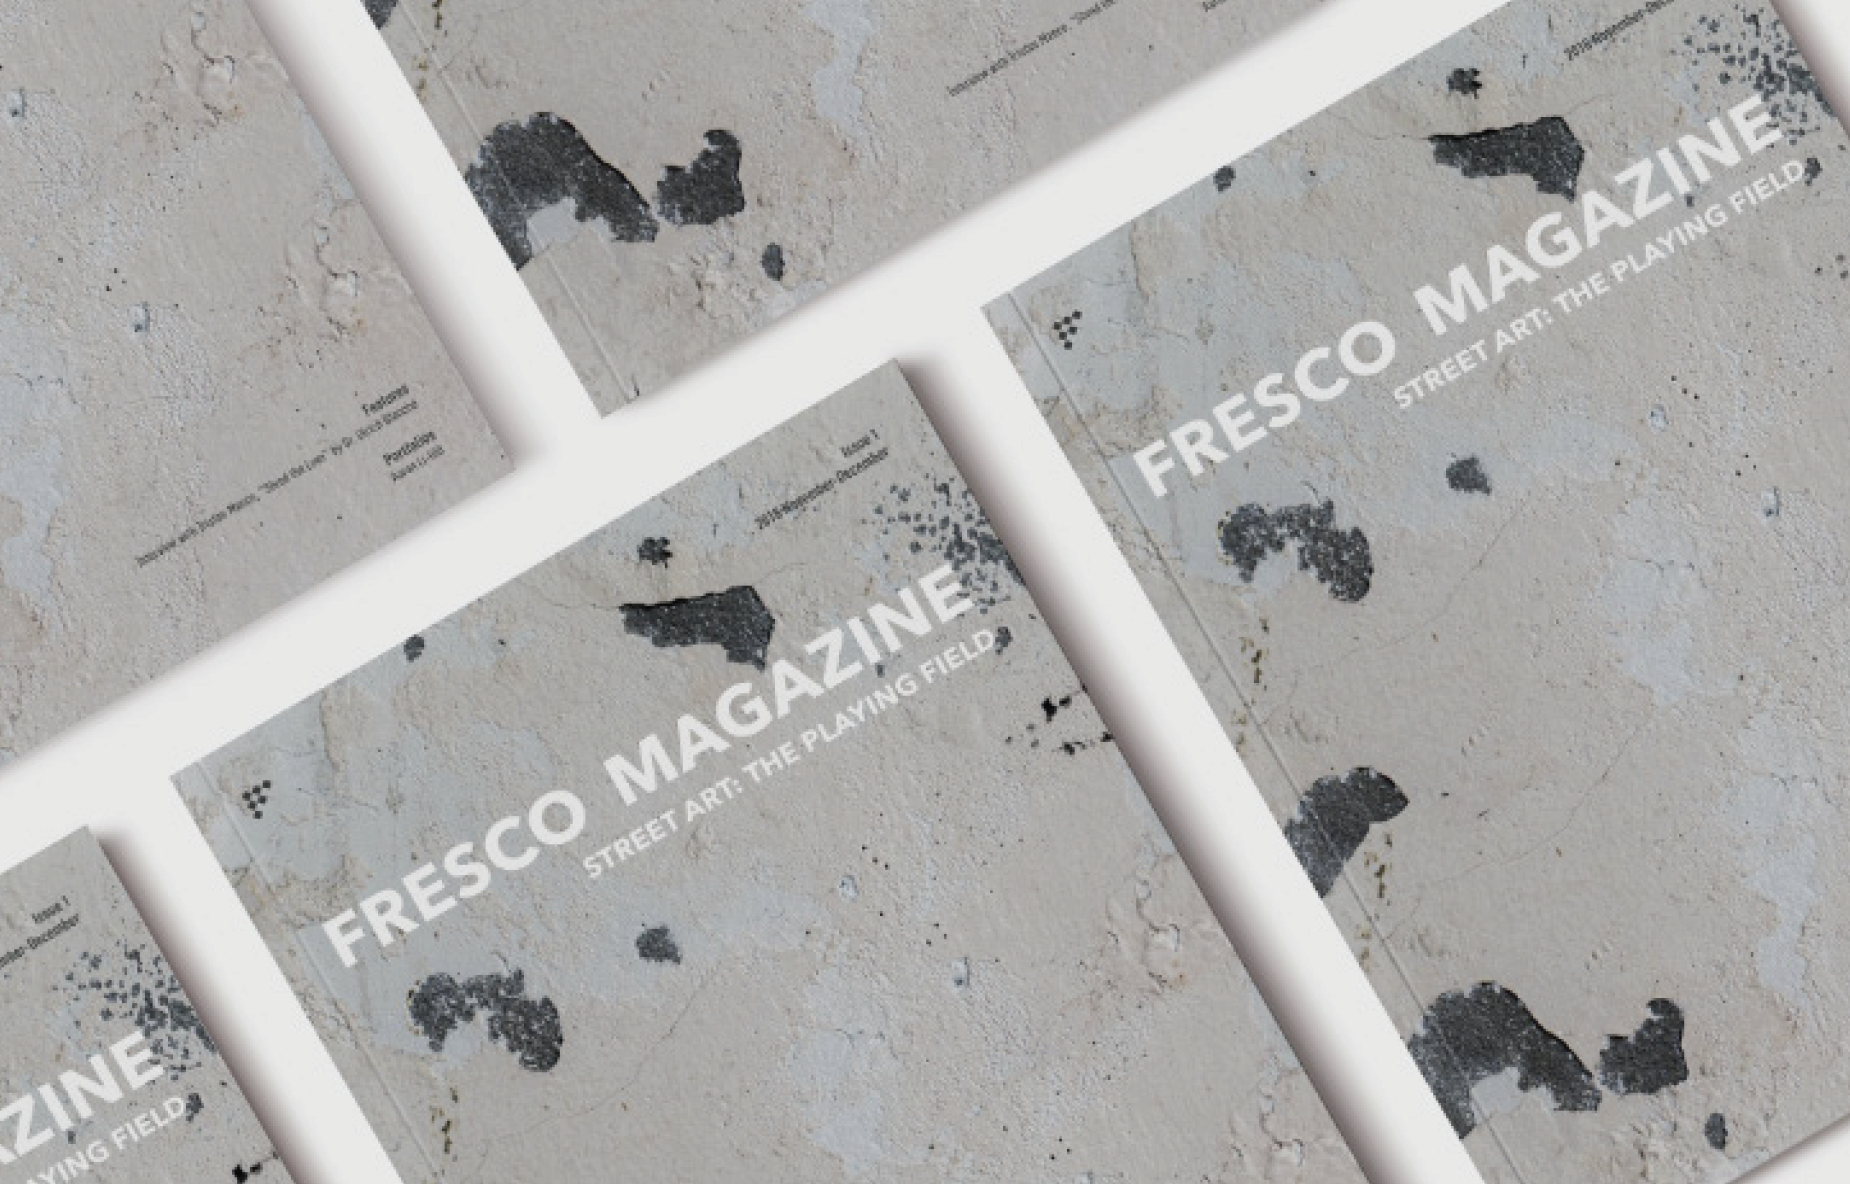 Issue 1 of FRESCO Magazine